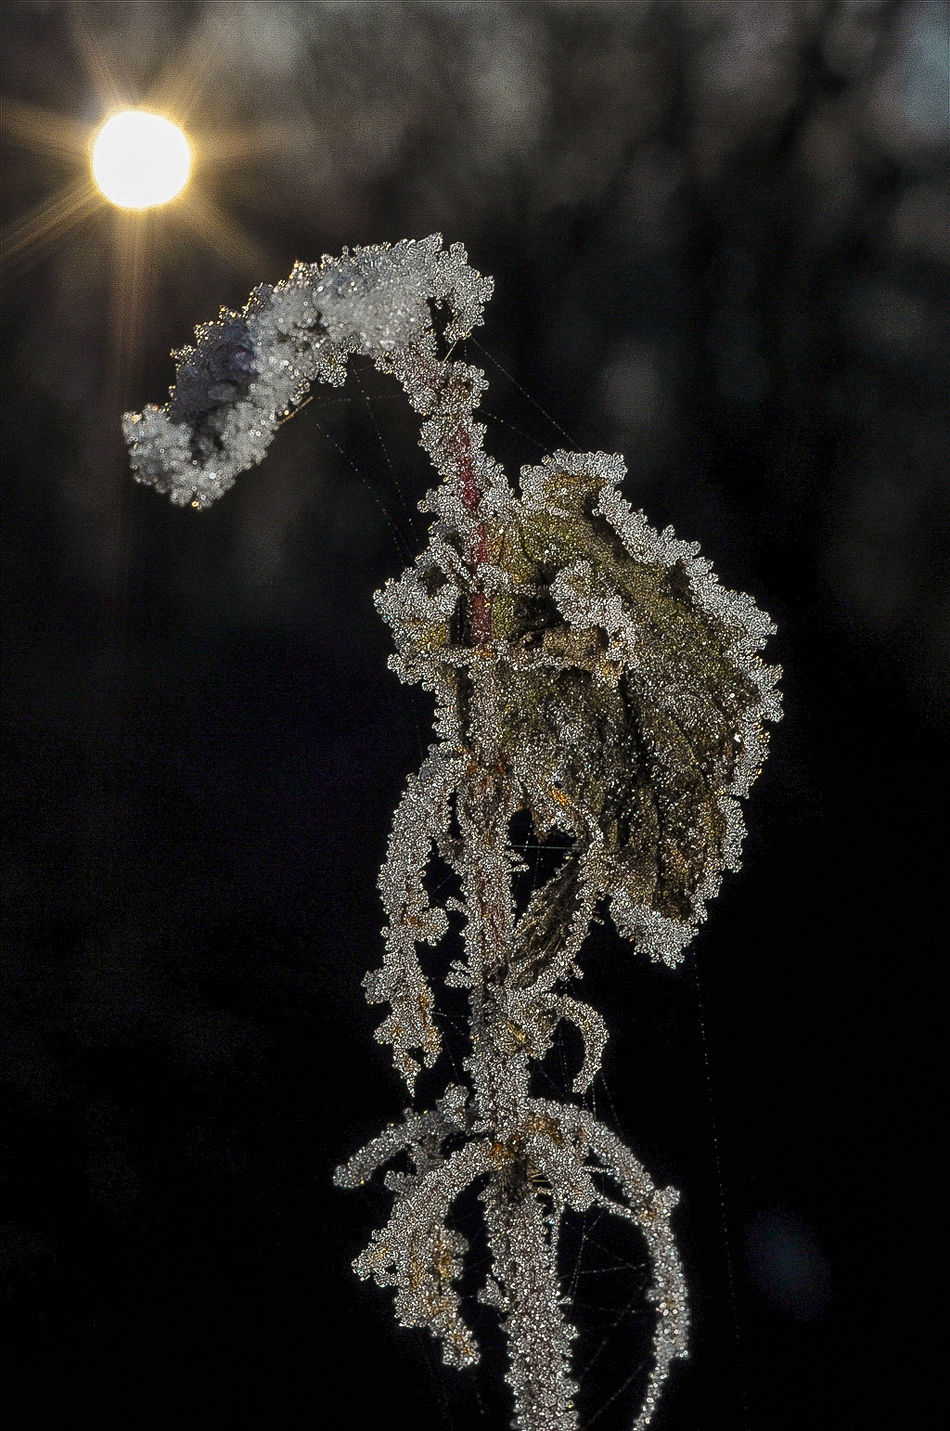 Botany Close-up Flower Focus On Foreground Fragility Frozen Glowing Marcokleinphotography Nature Plant Sun